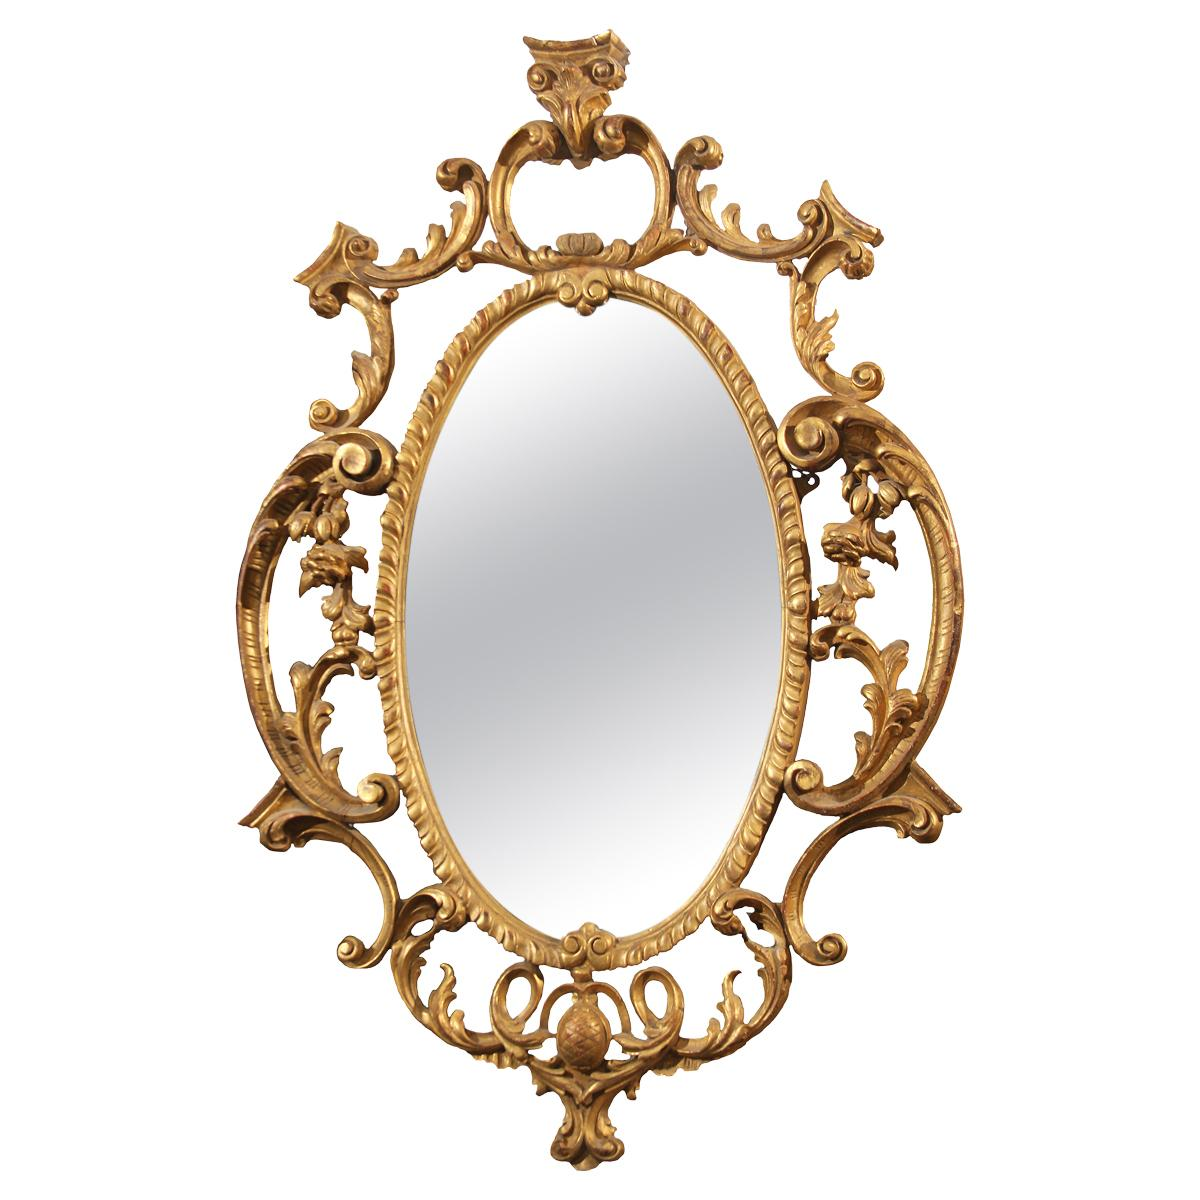 Late 18th Century Ornate Carved Wood and Gilt Mirror